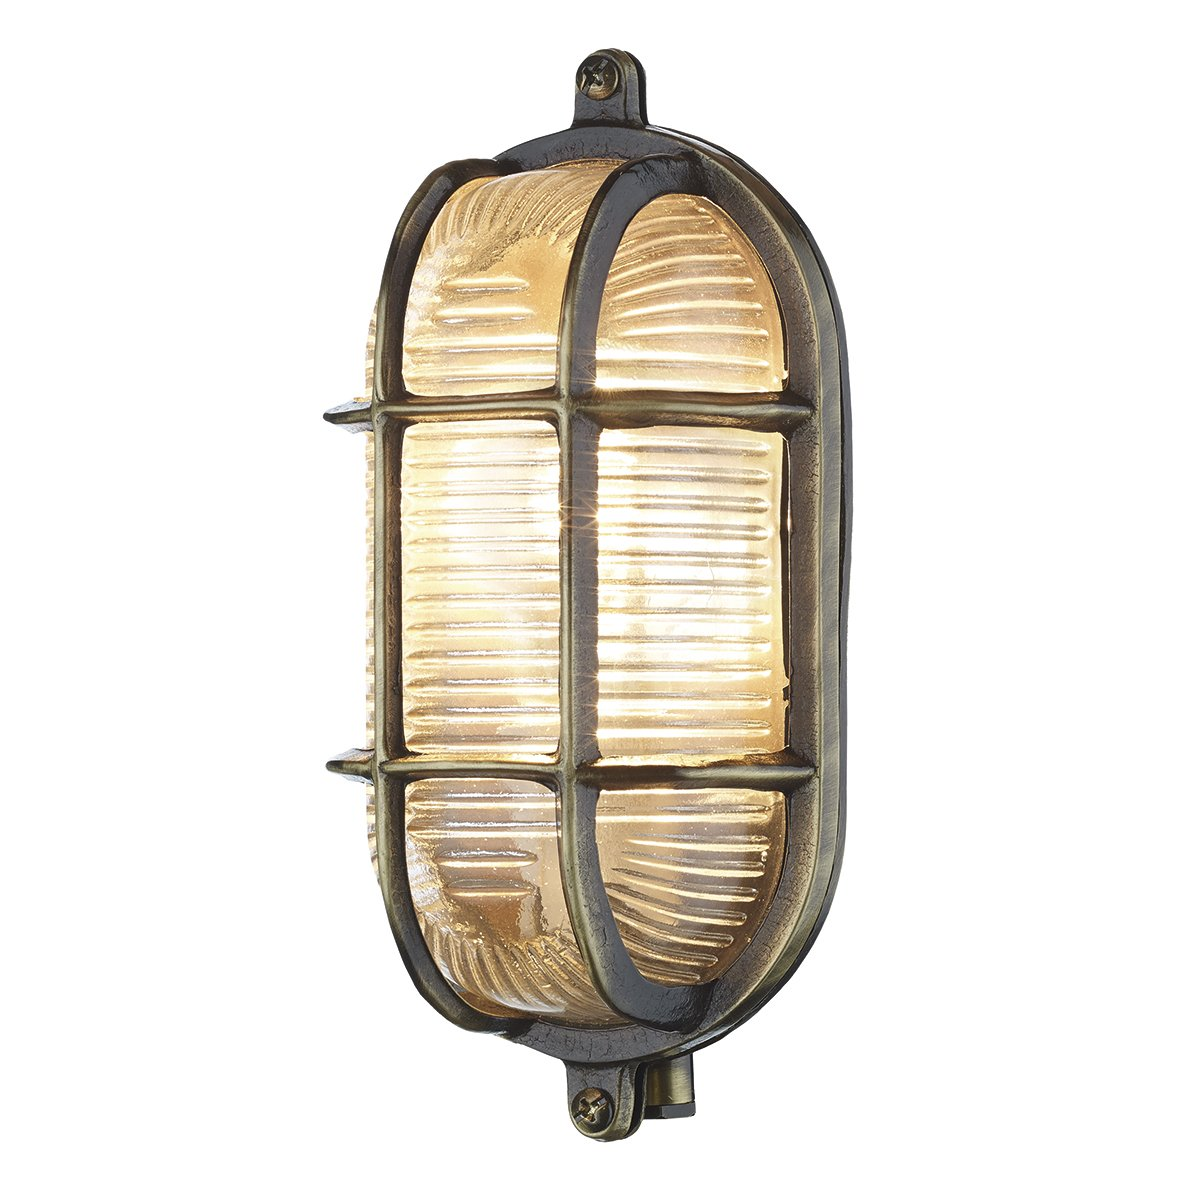 David Hunt Lighting ADM5275 Admiral 1 Light Small Oval Wall Light Antique Brass